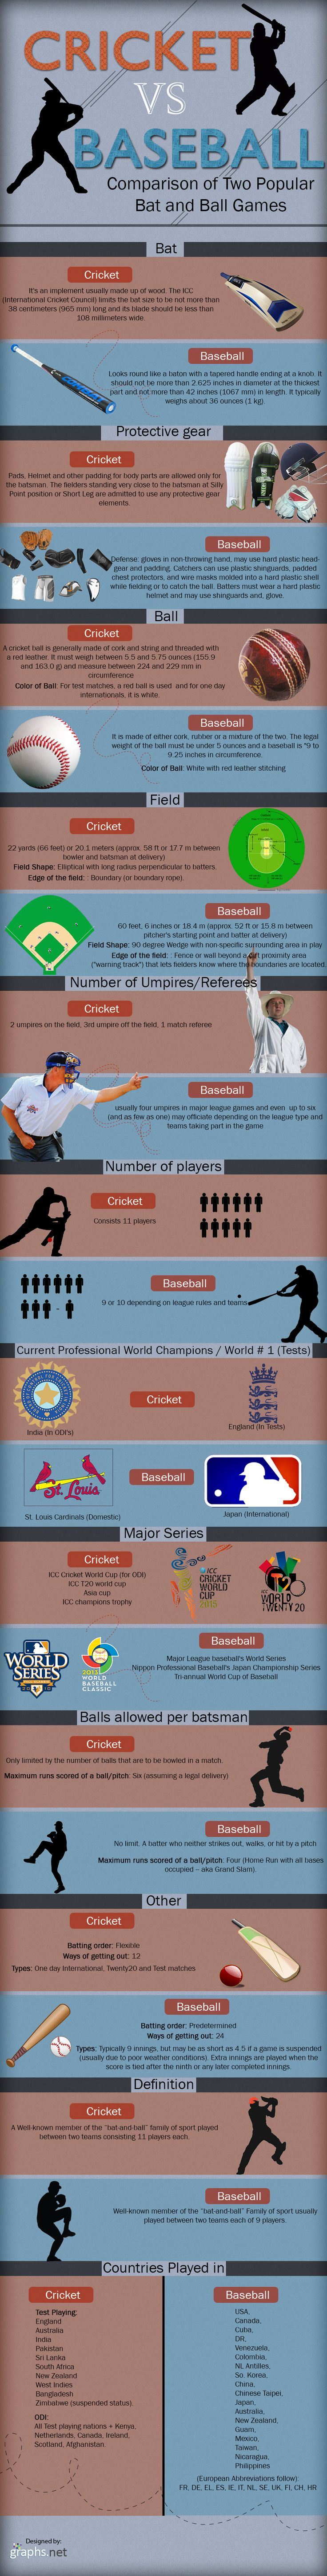 The difference between cricket and baseball.